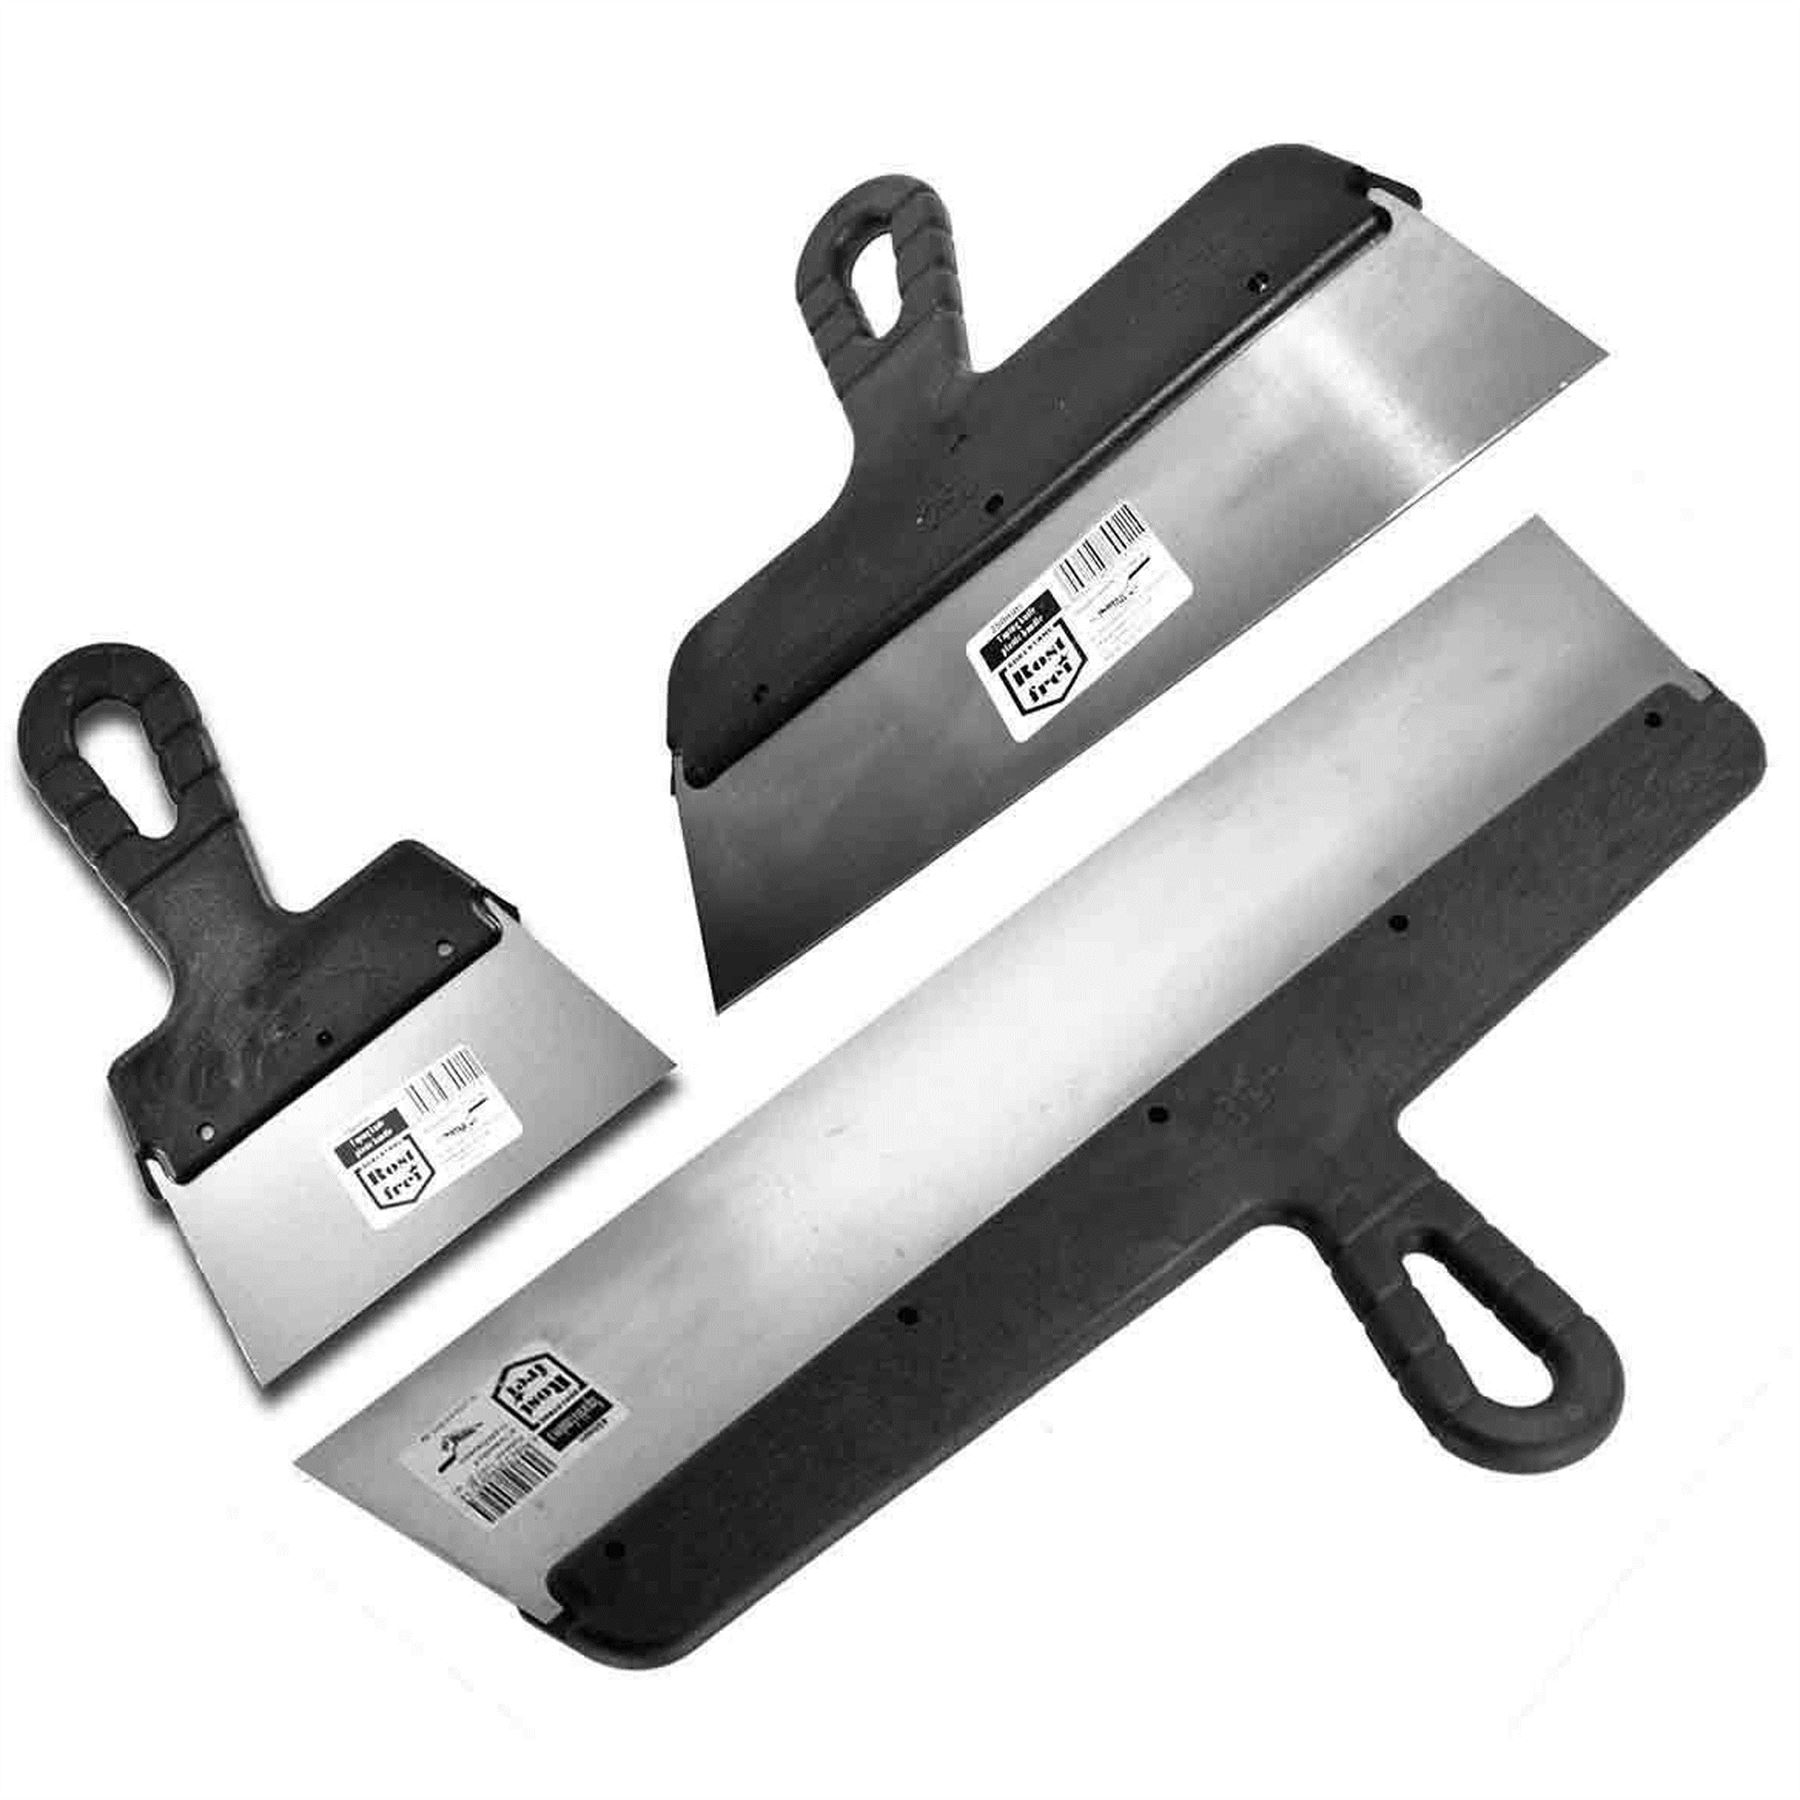 Stainless Steel Filling Knife Drywall Plastering Spatula Taping